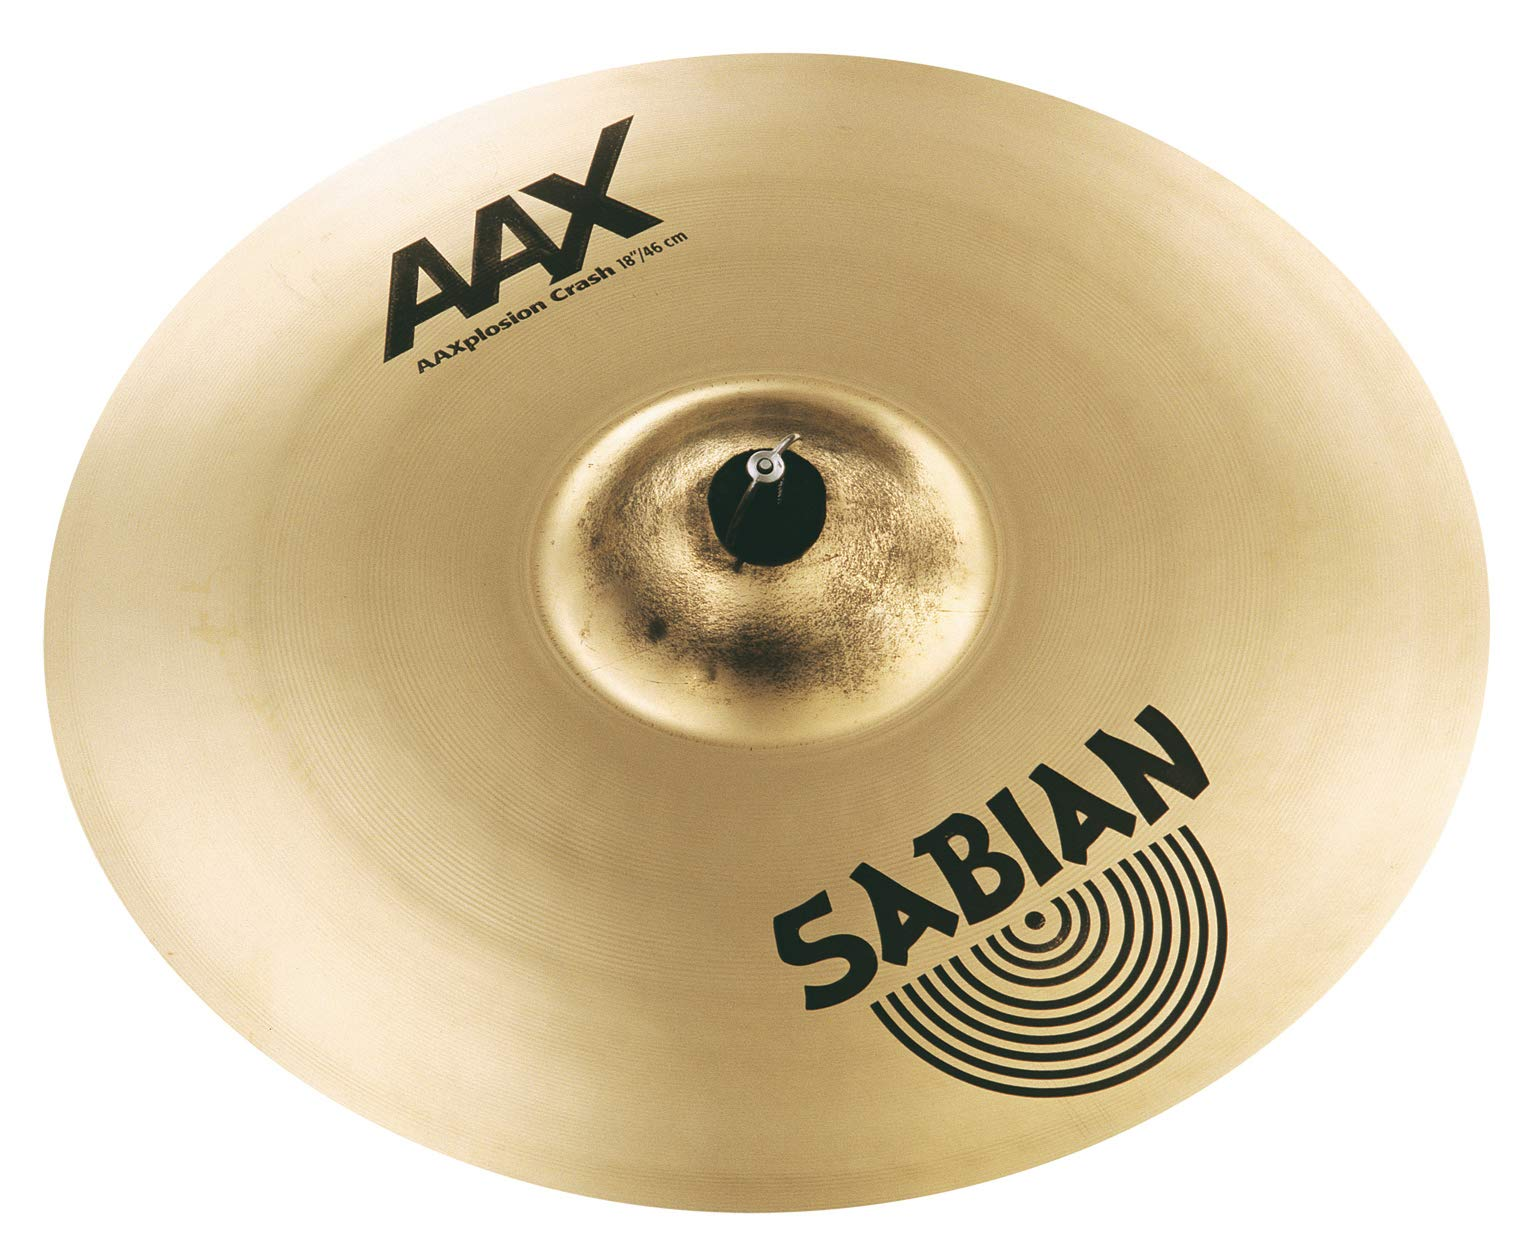 Sabian AAX 19'' X-Plosion Crash Cymbal, Brilliant Finish by Sabian